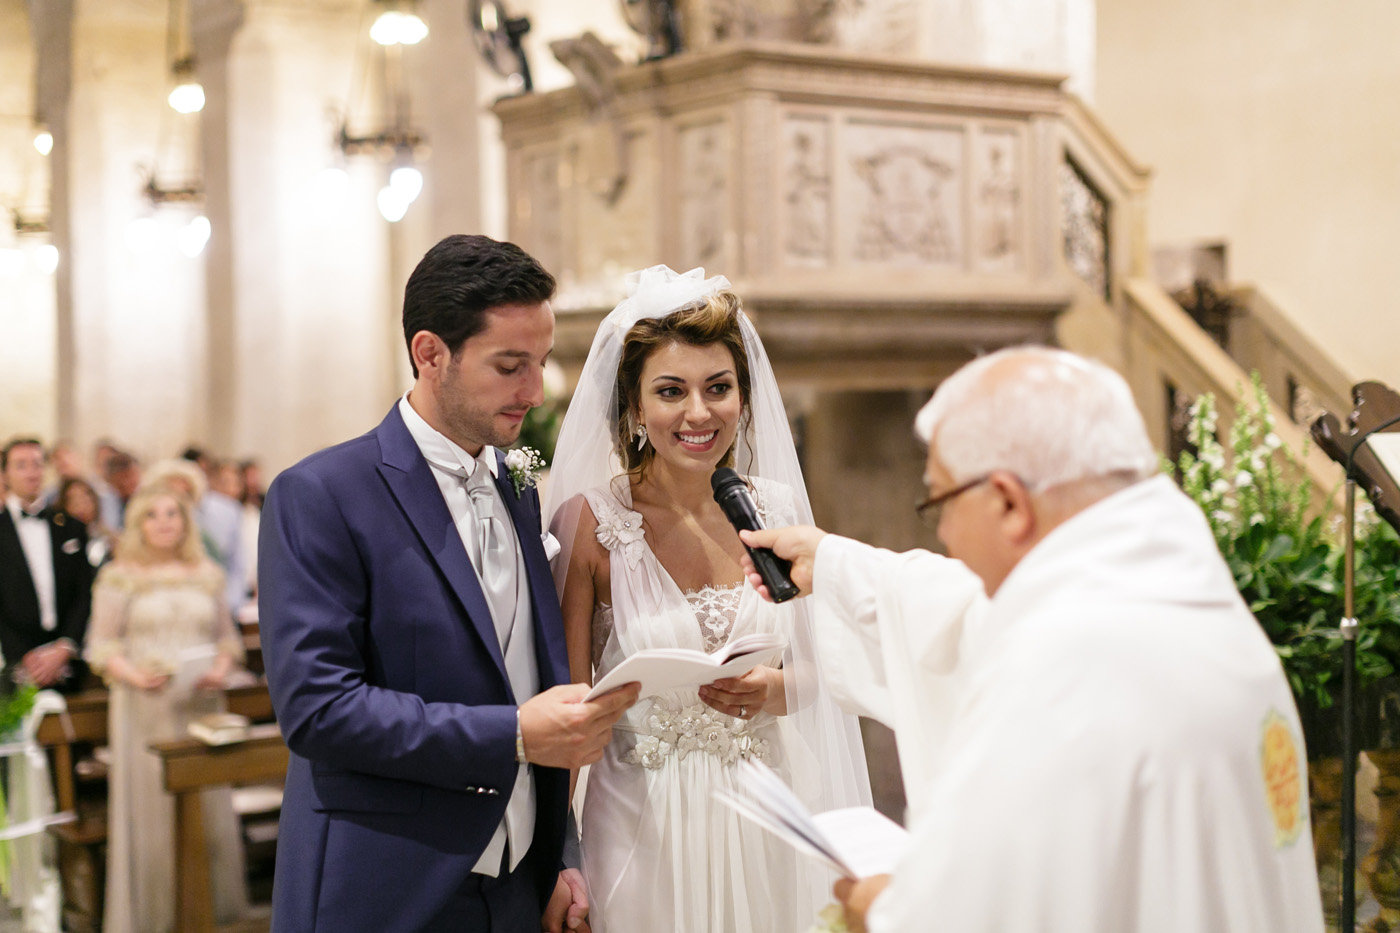 View More: https://joeewong.pass.us/francesa_antonio_matrimonio